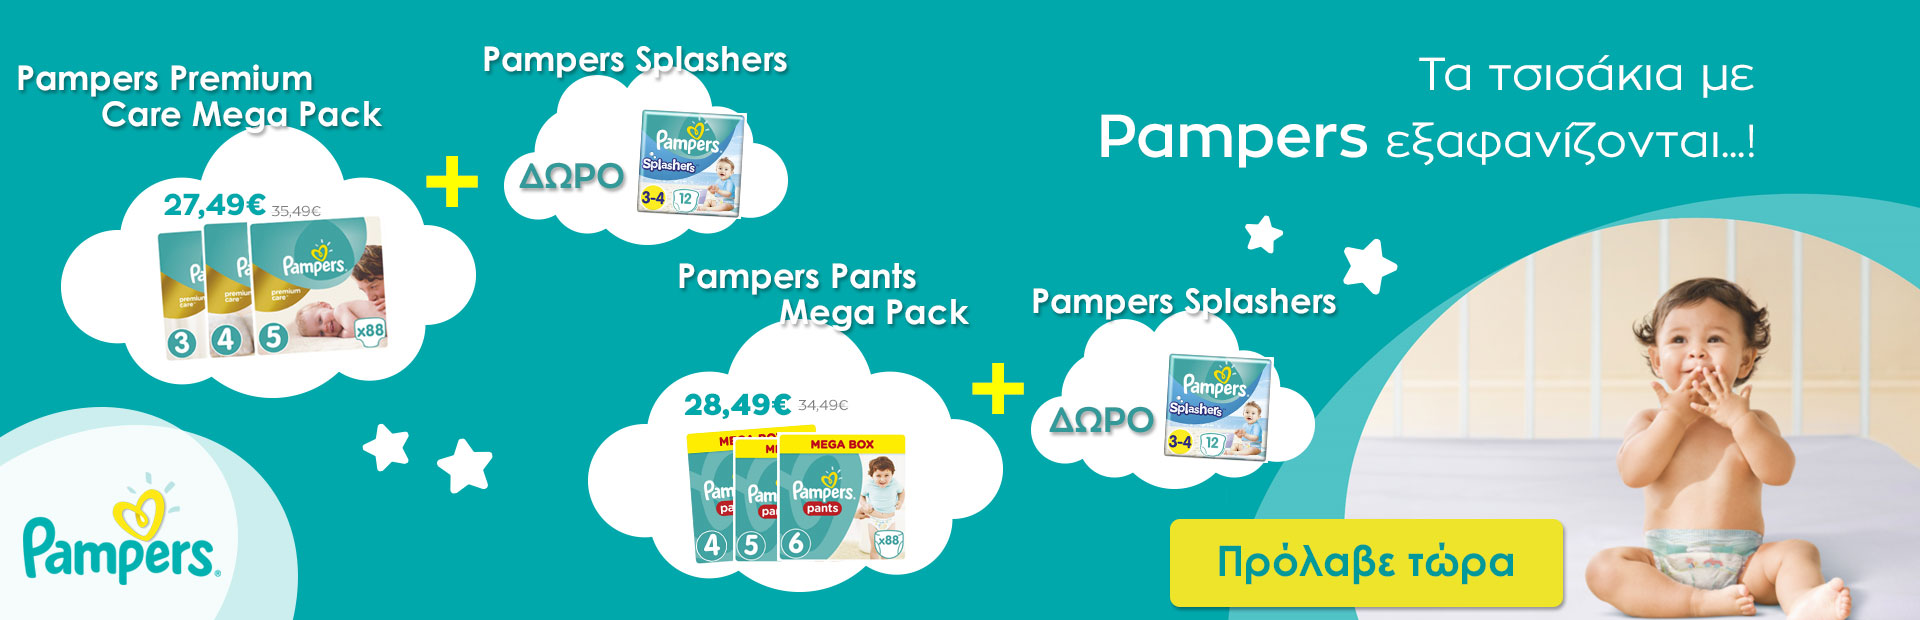 Pampers Offers Feb 2018